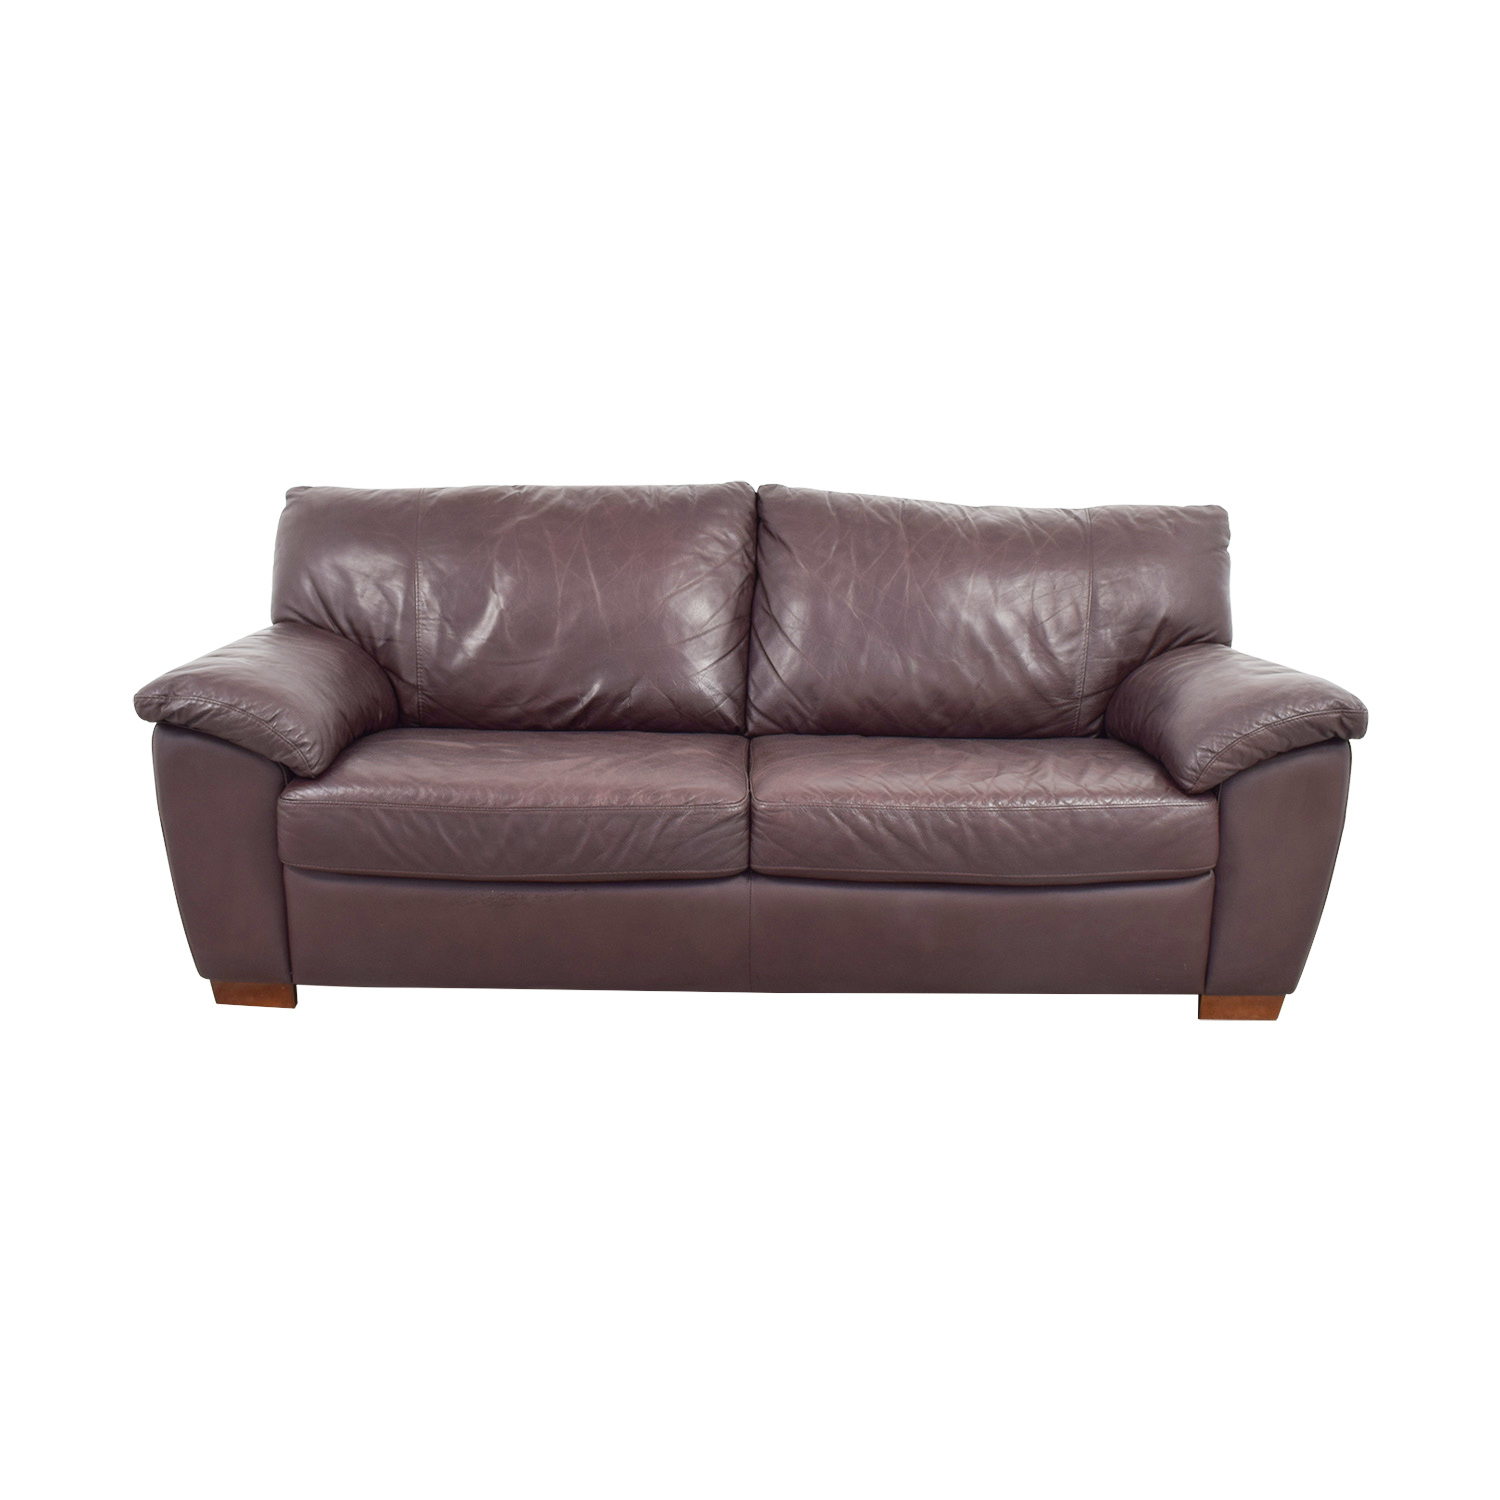 87 Off Ikea Ikea Vreta Brown Leather Two Cushion Sofa Sofas